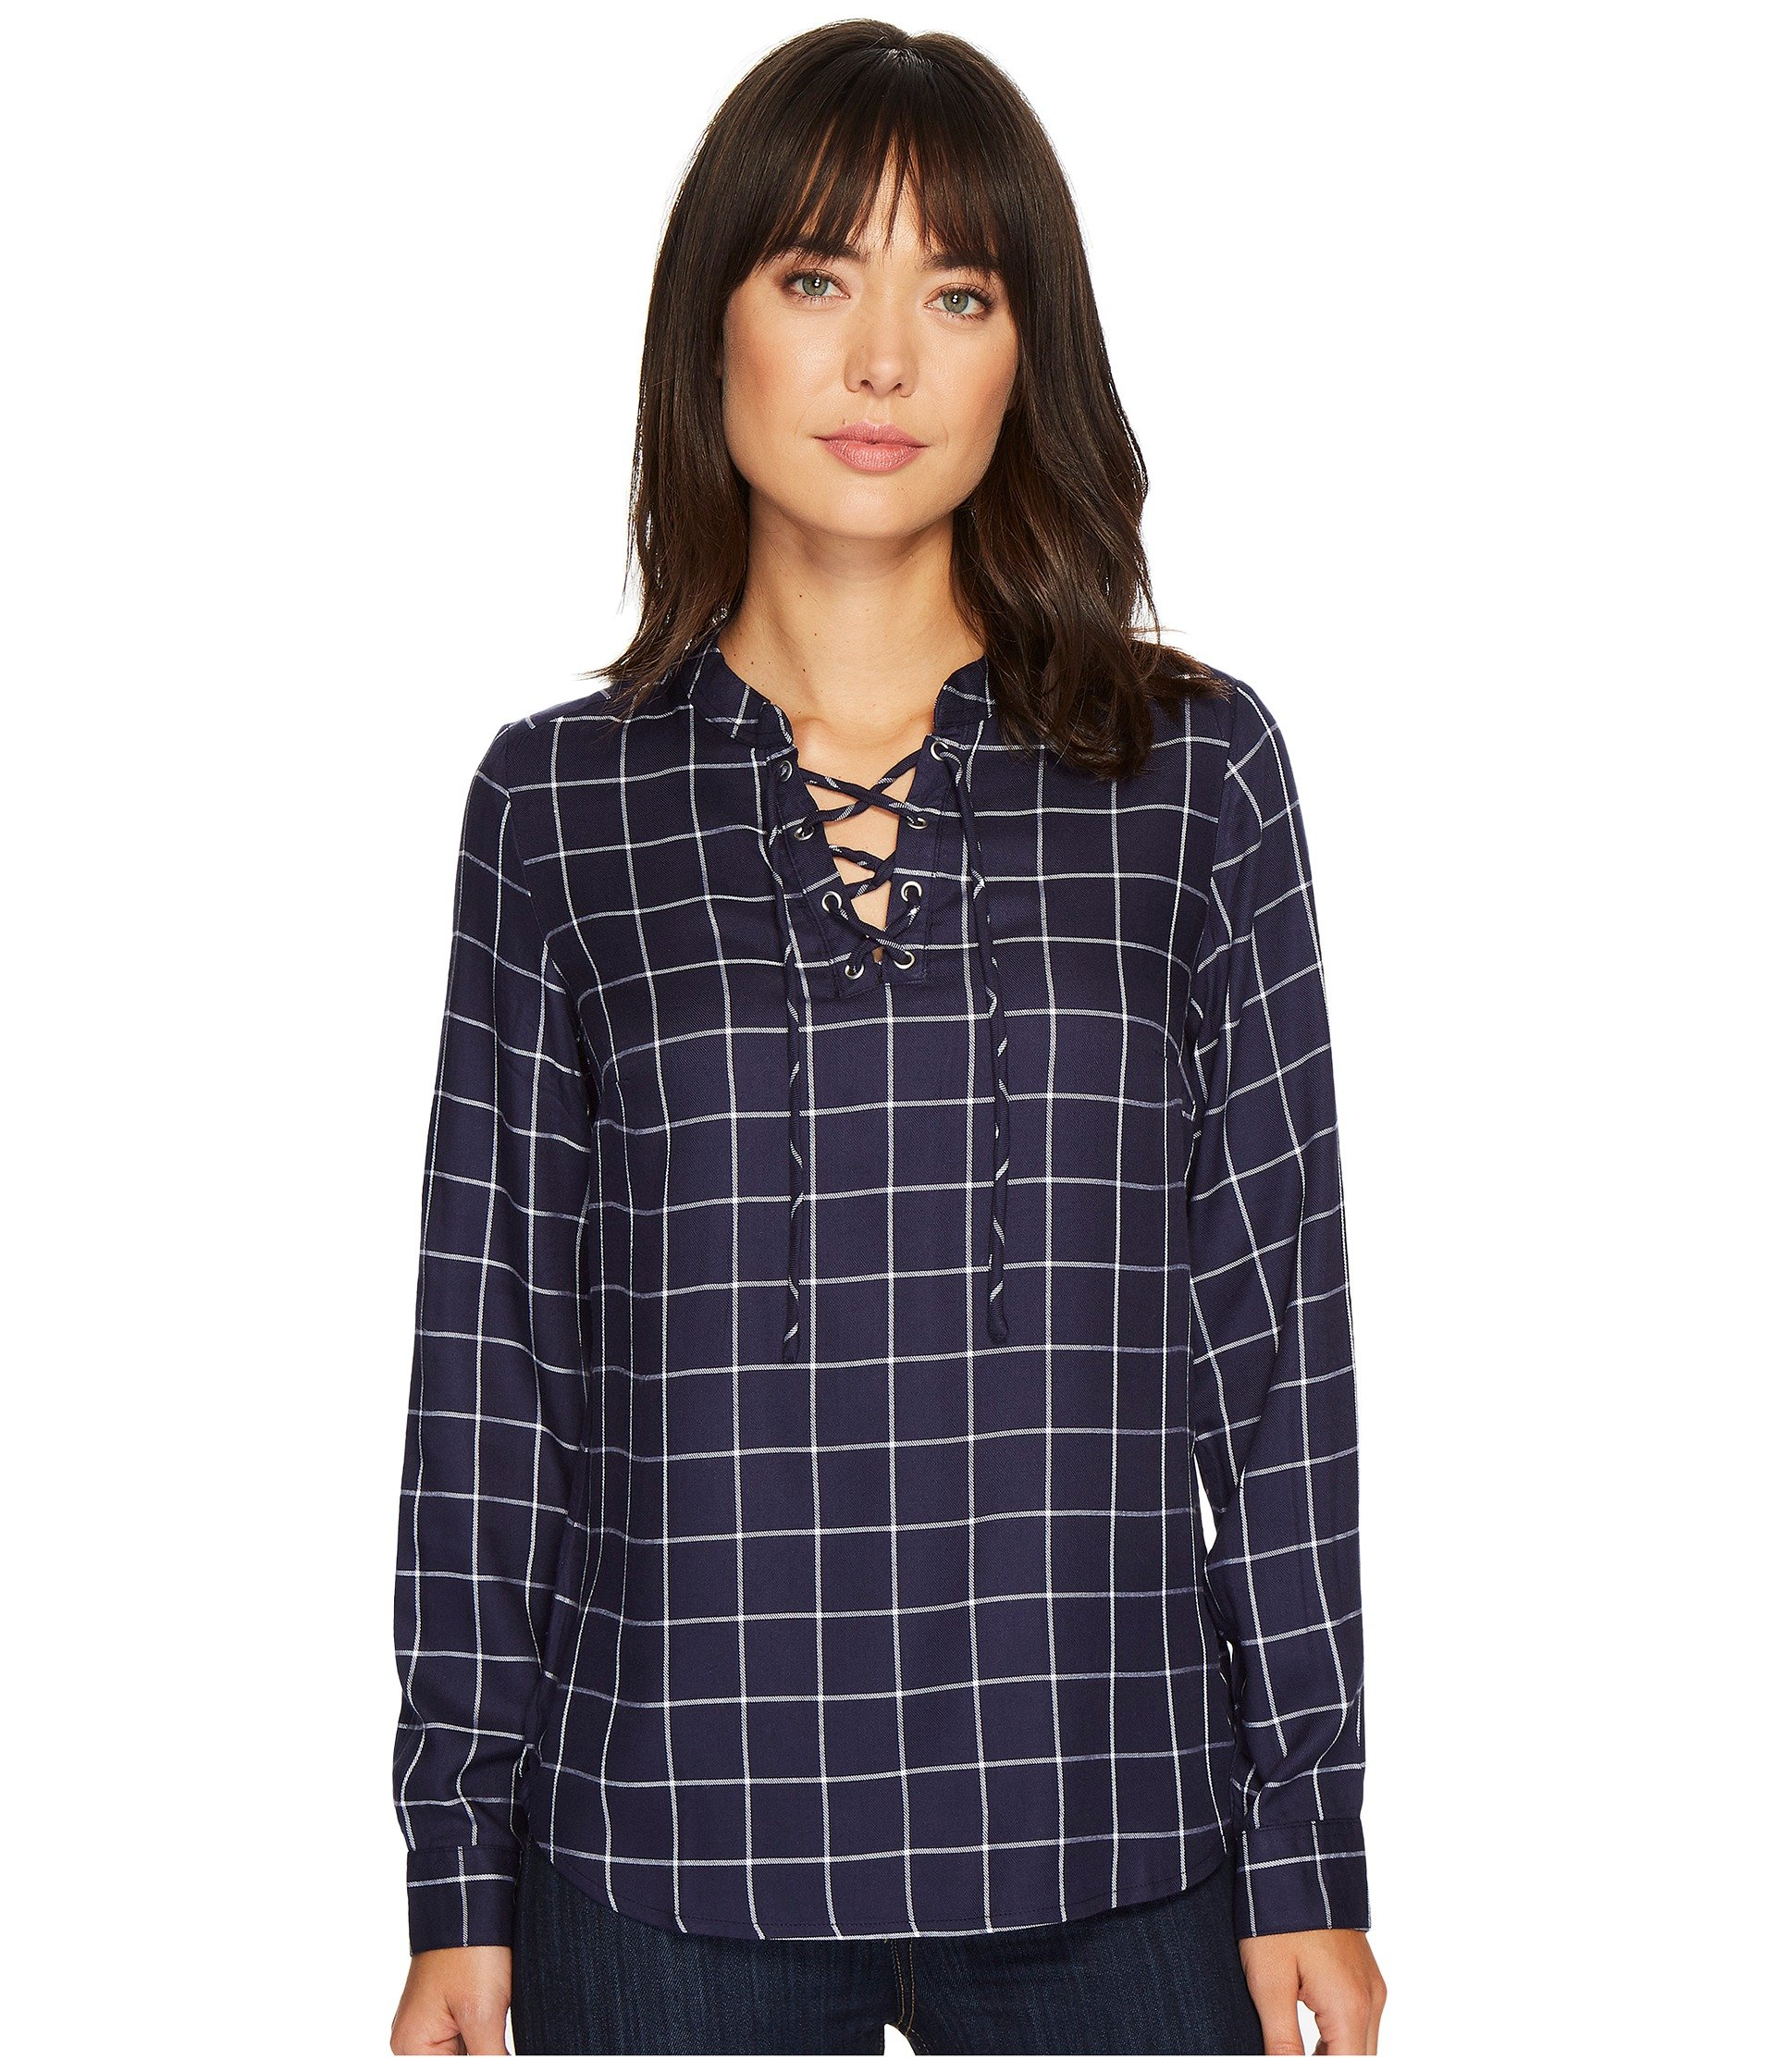 Blusa para Mujer U.S. POLO ASSN. Lace-Up Twill Pullover Shirt  + U.S. POLO ASSN. en VeoyCompro.net